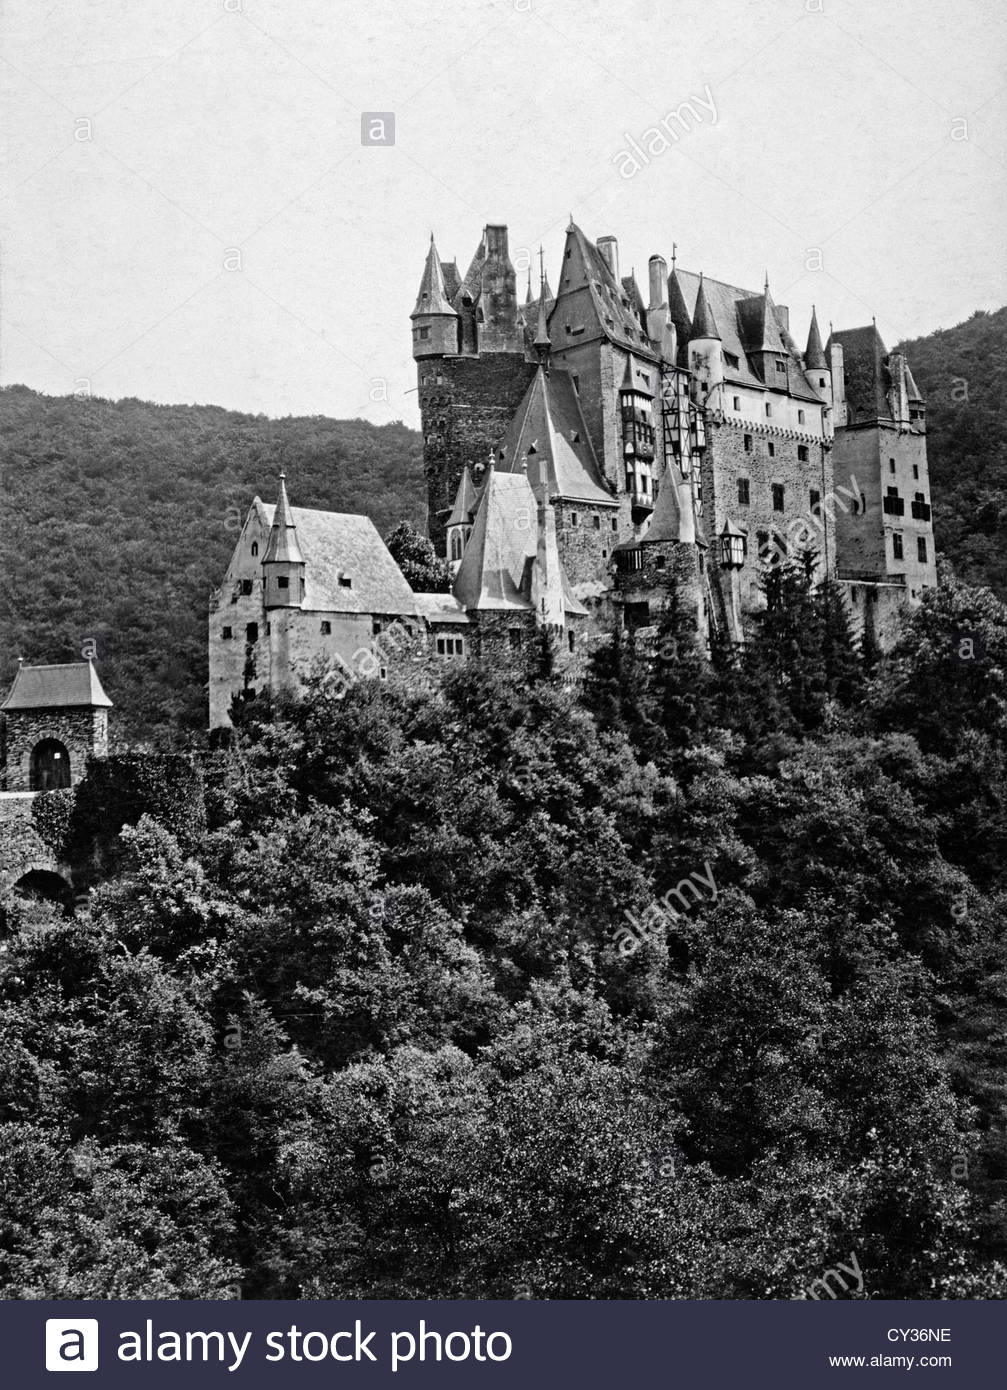 Schloss Eltz is a preserved medieval castle of the Rhine Valley. - Stock Image